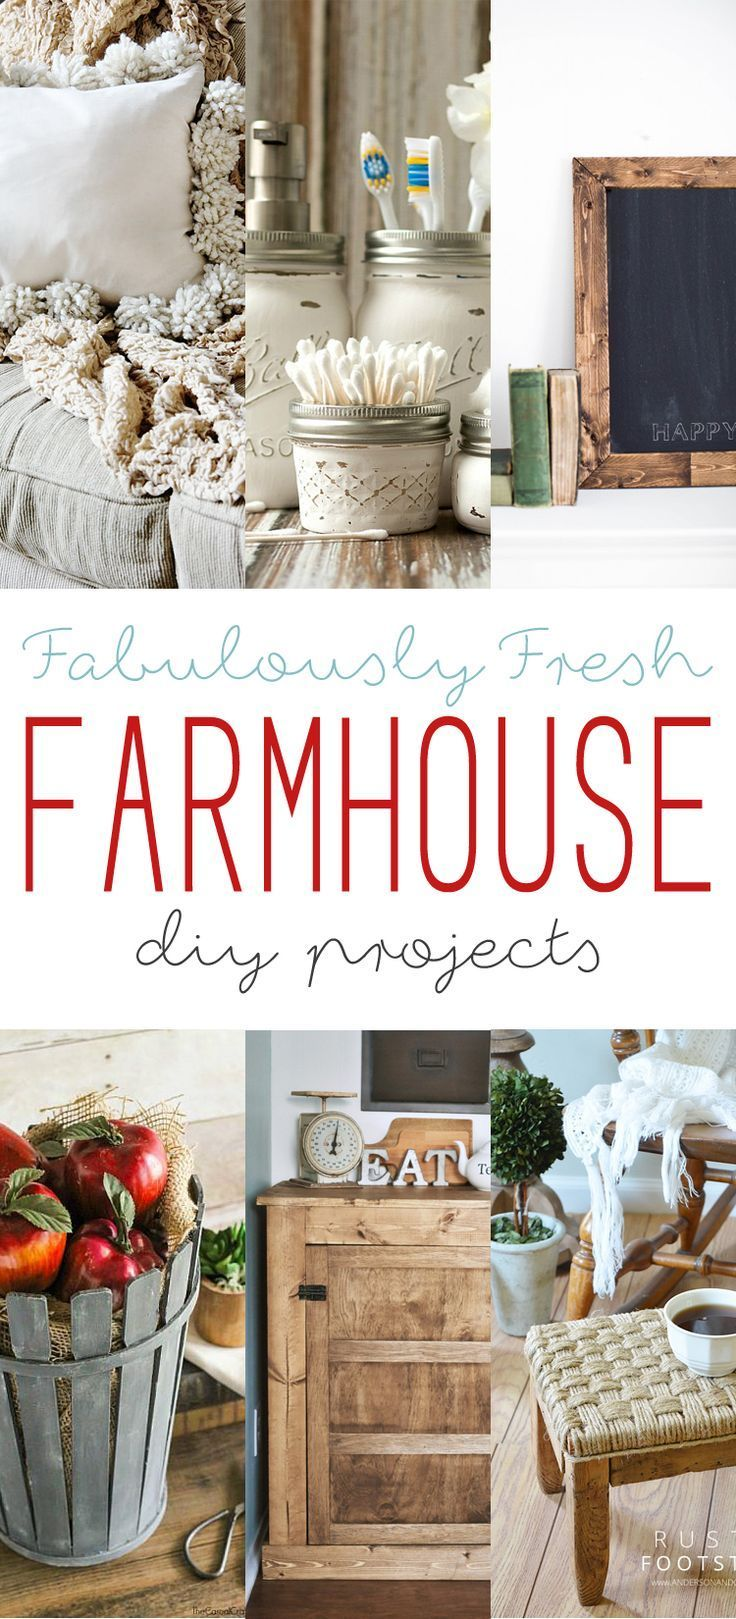 1739 Best Diy Decorating Images On Pinterest Farmhouse Style Farmhouse Decor And Craft Projects